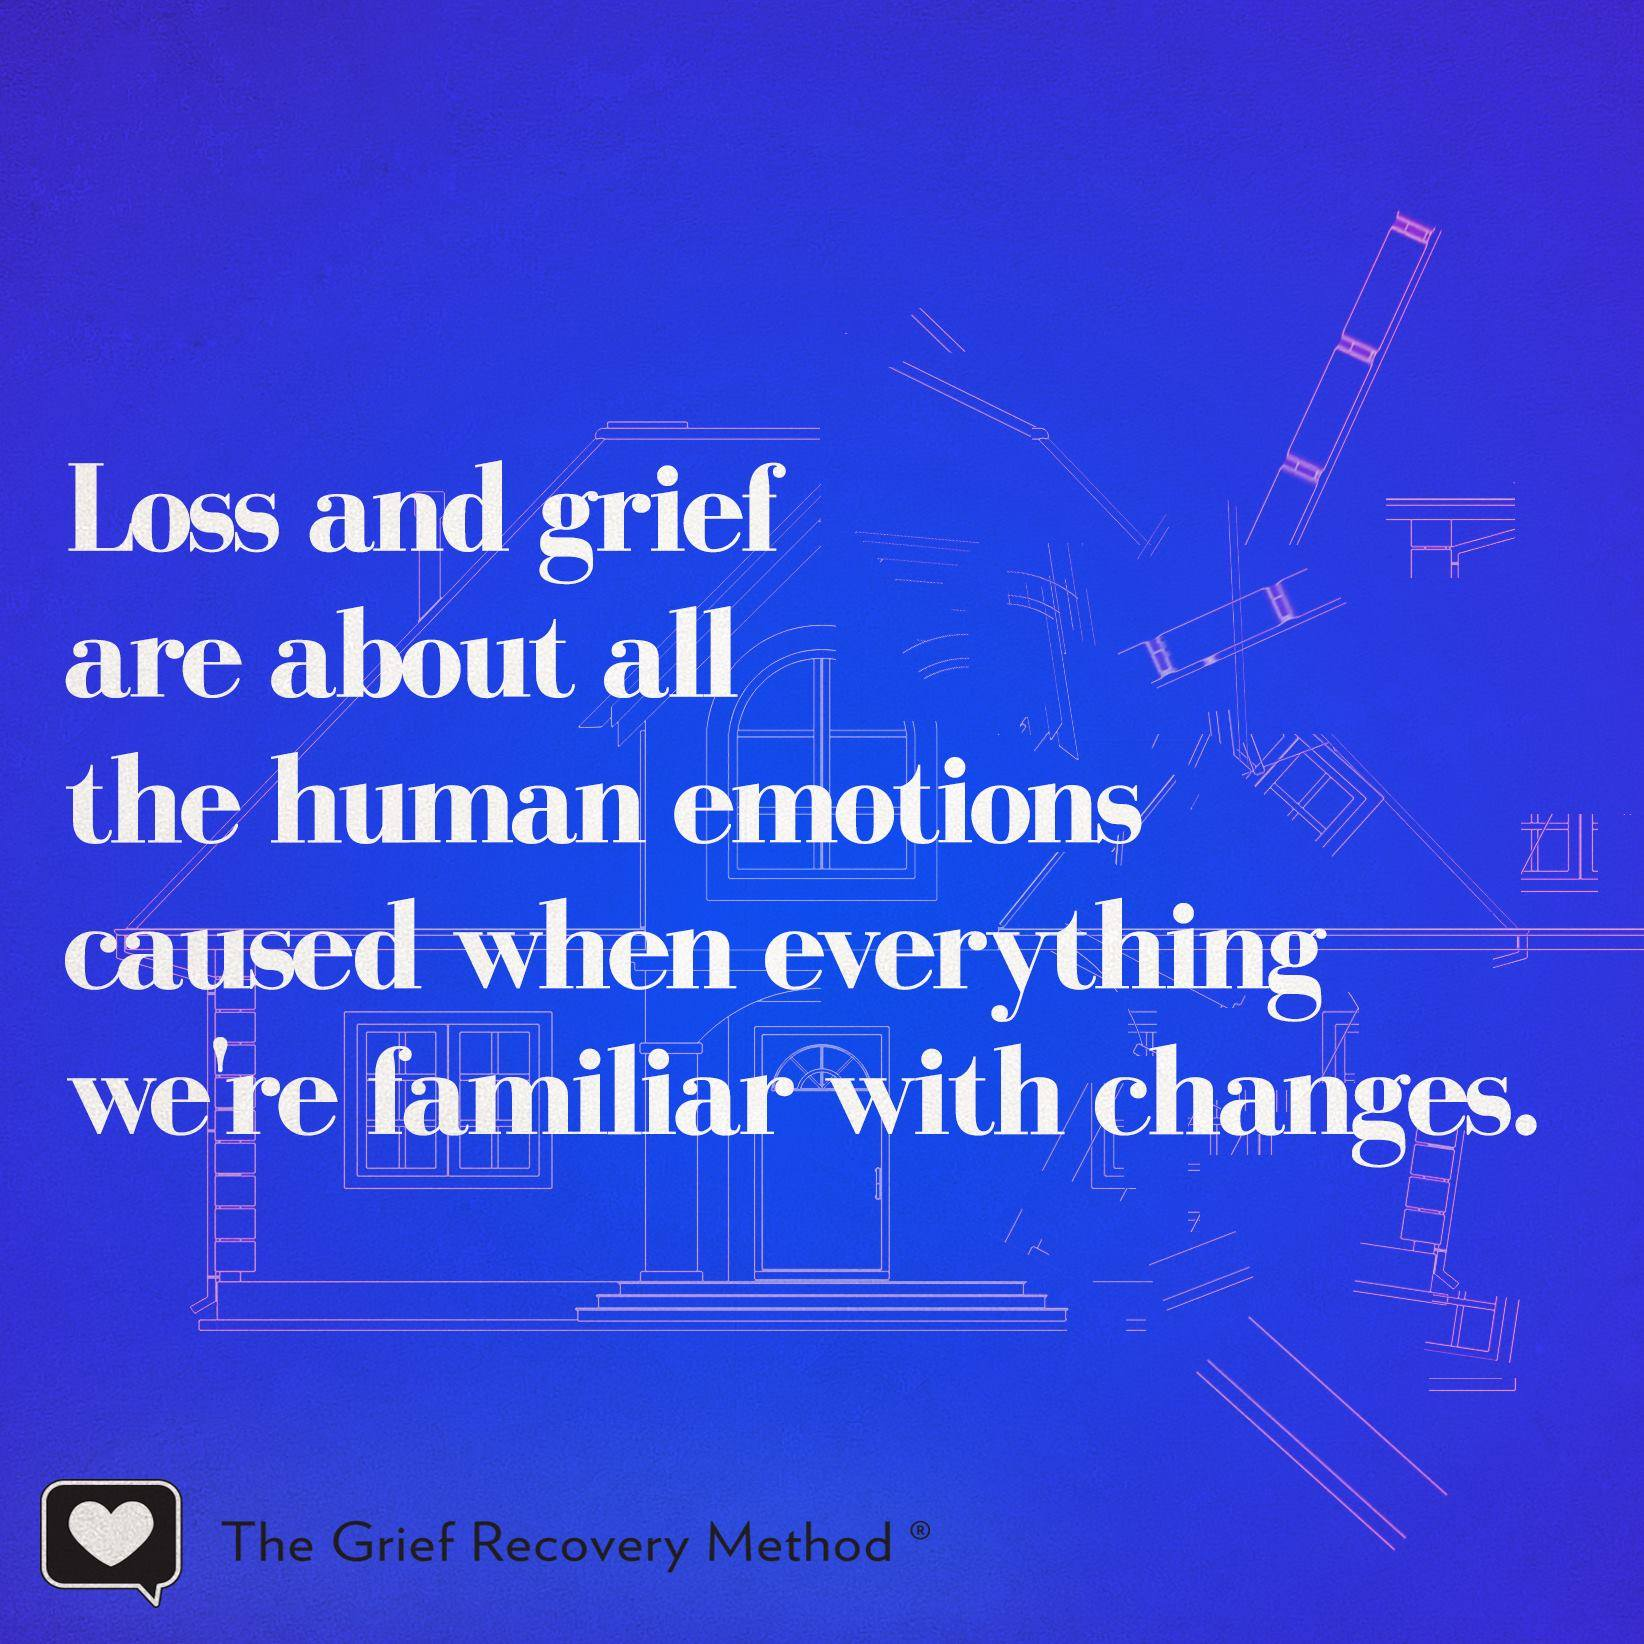 grief loss emotions everything familiar changes.jpg